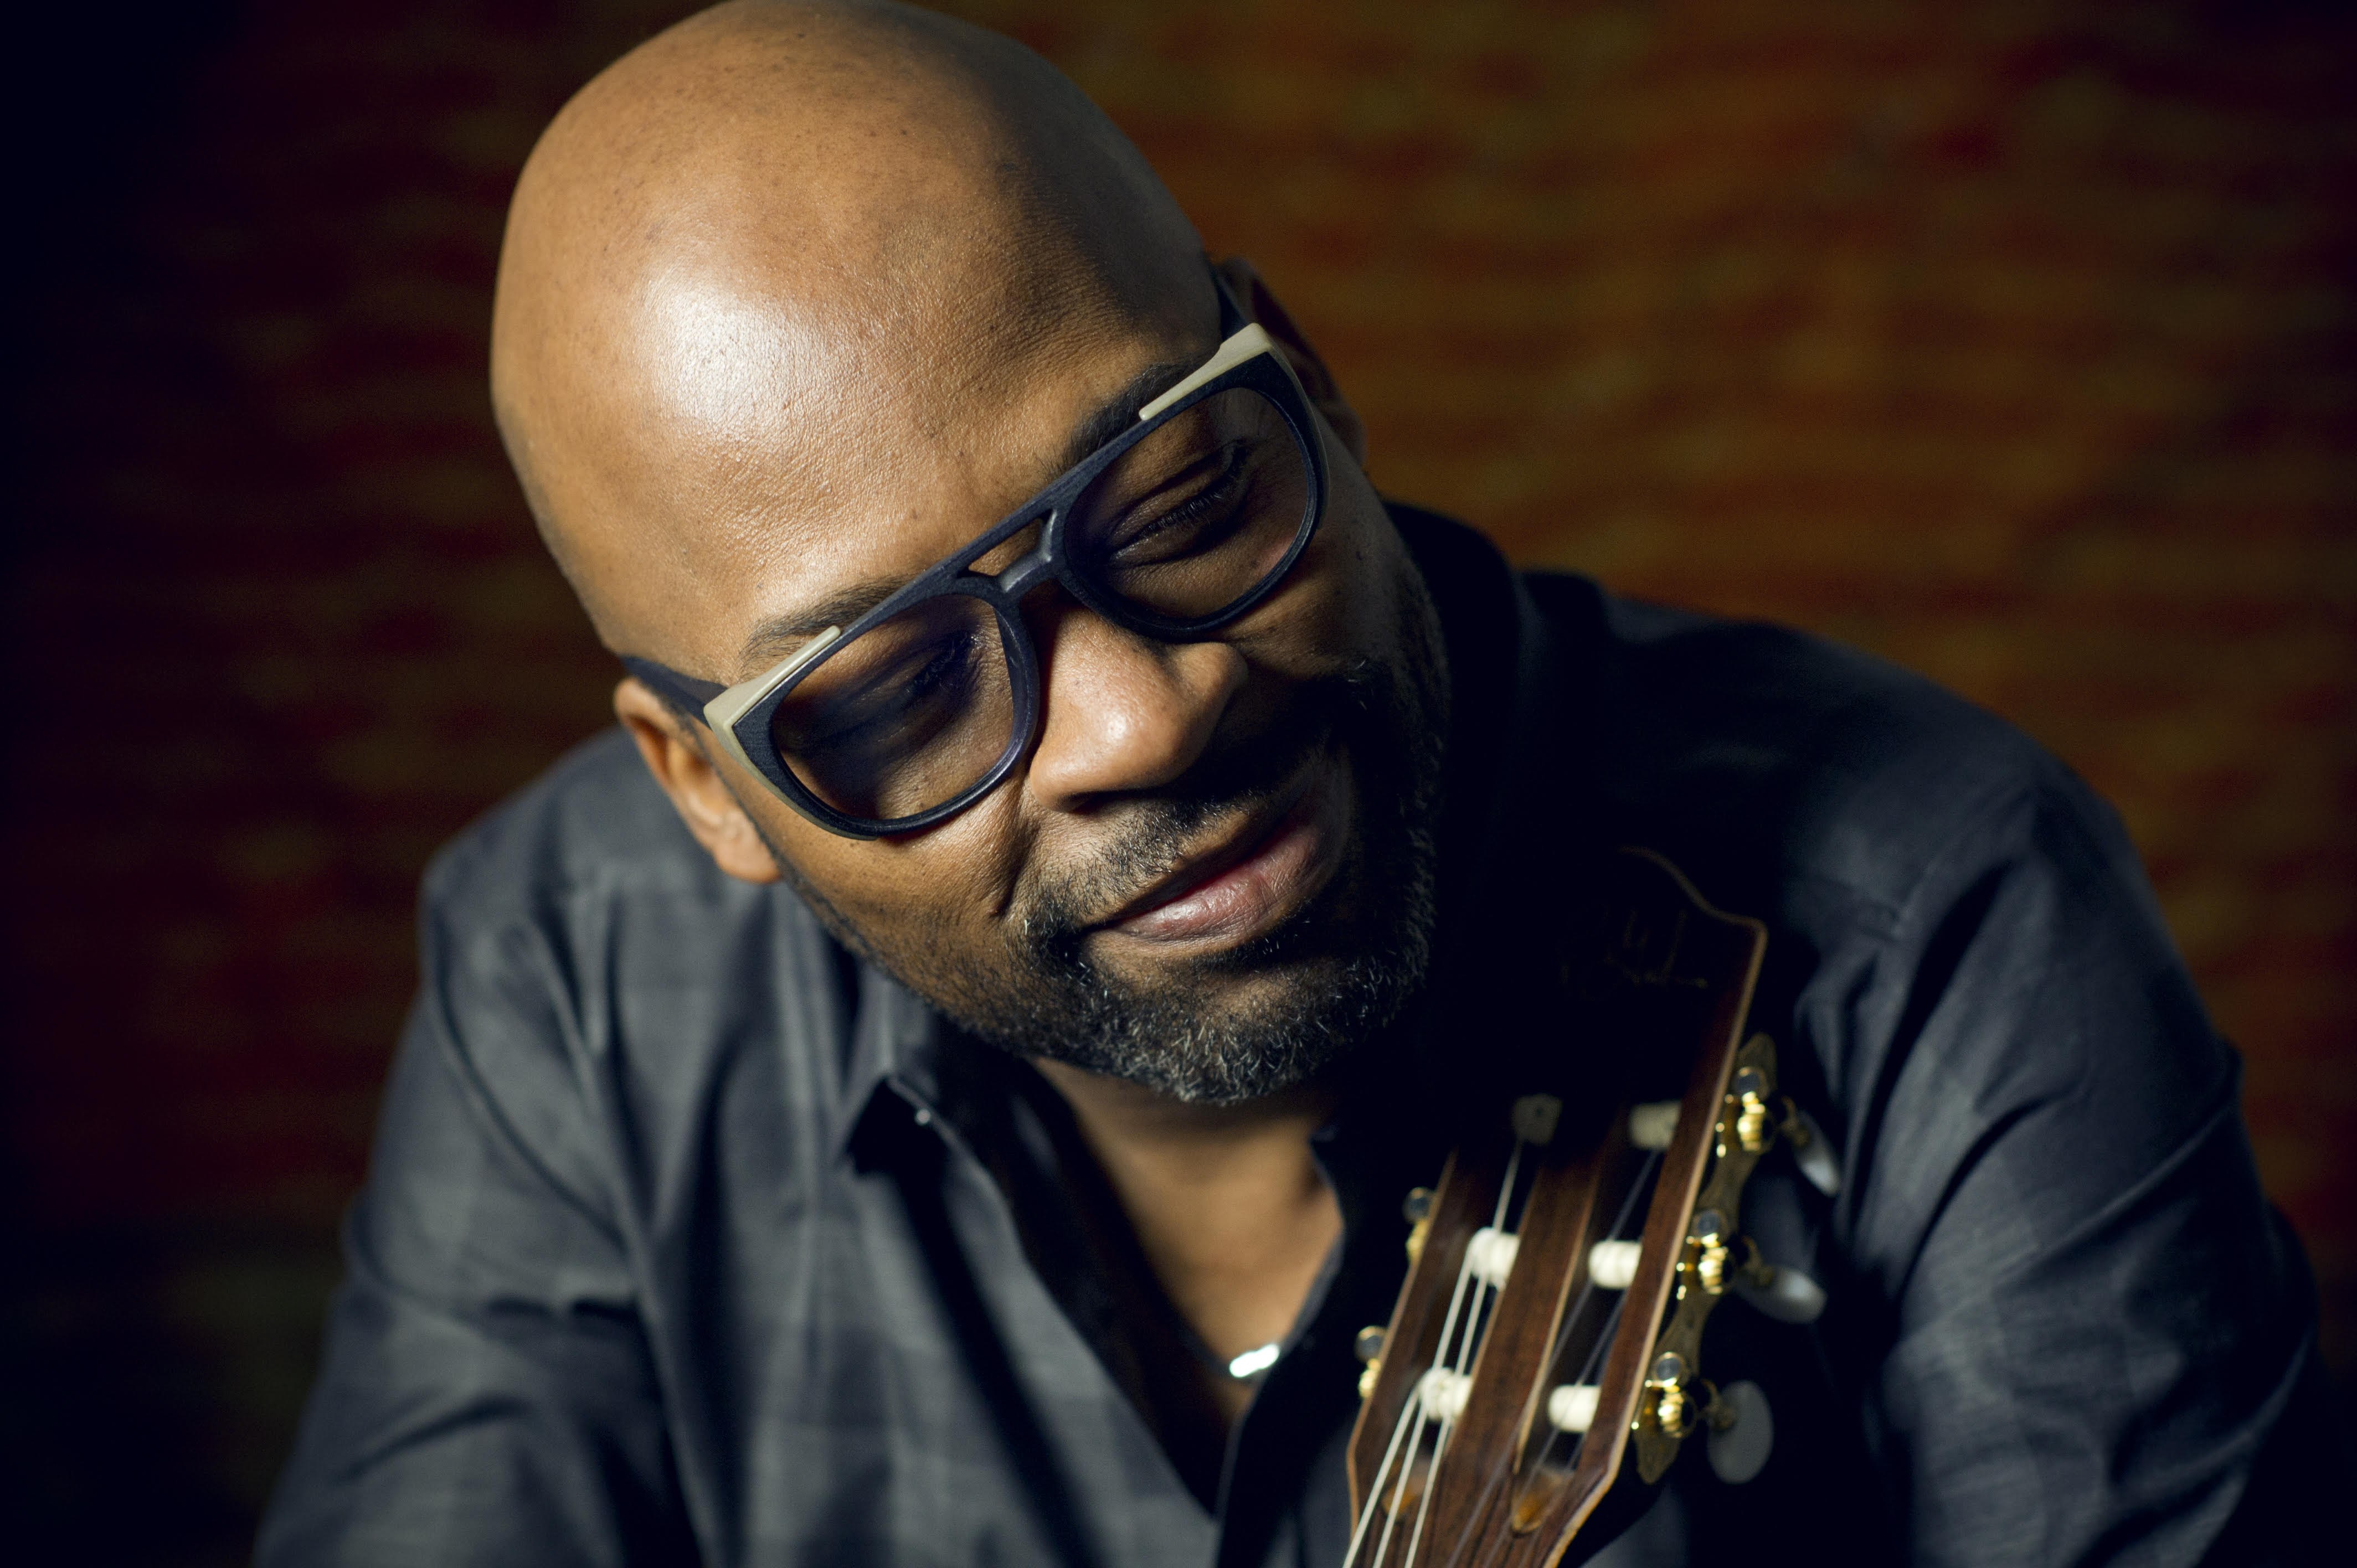 SMALL WORLD: Guitarist Lionel Loueke Brings Gentility to 'The Journey'